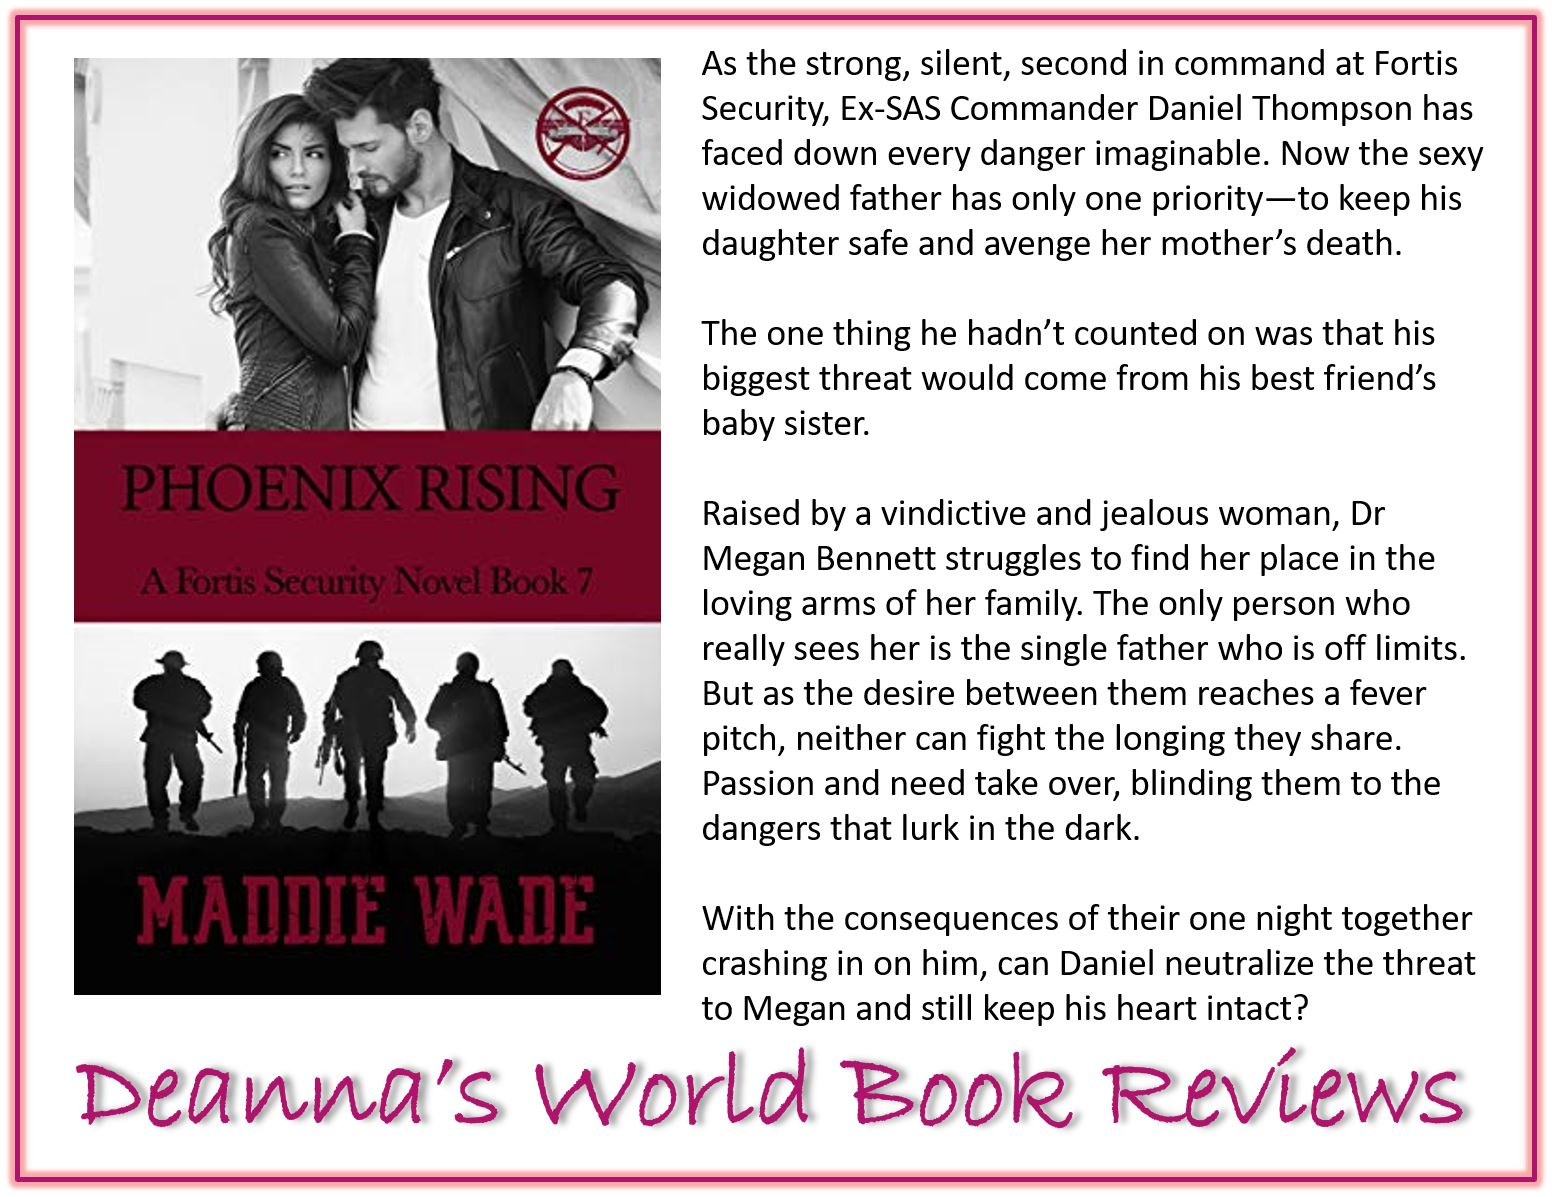 Phoenix Rising by Maddie Wade blurb